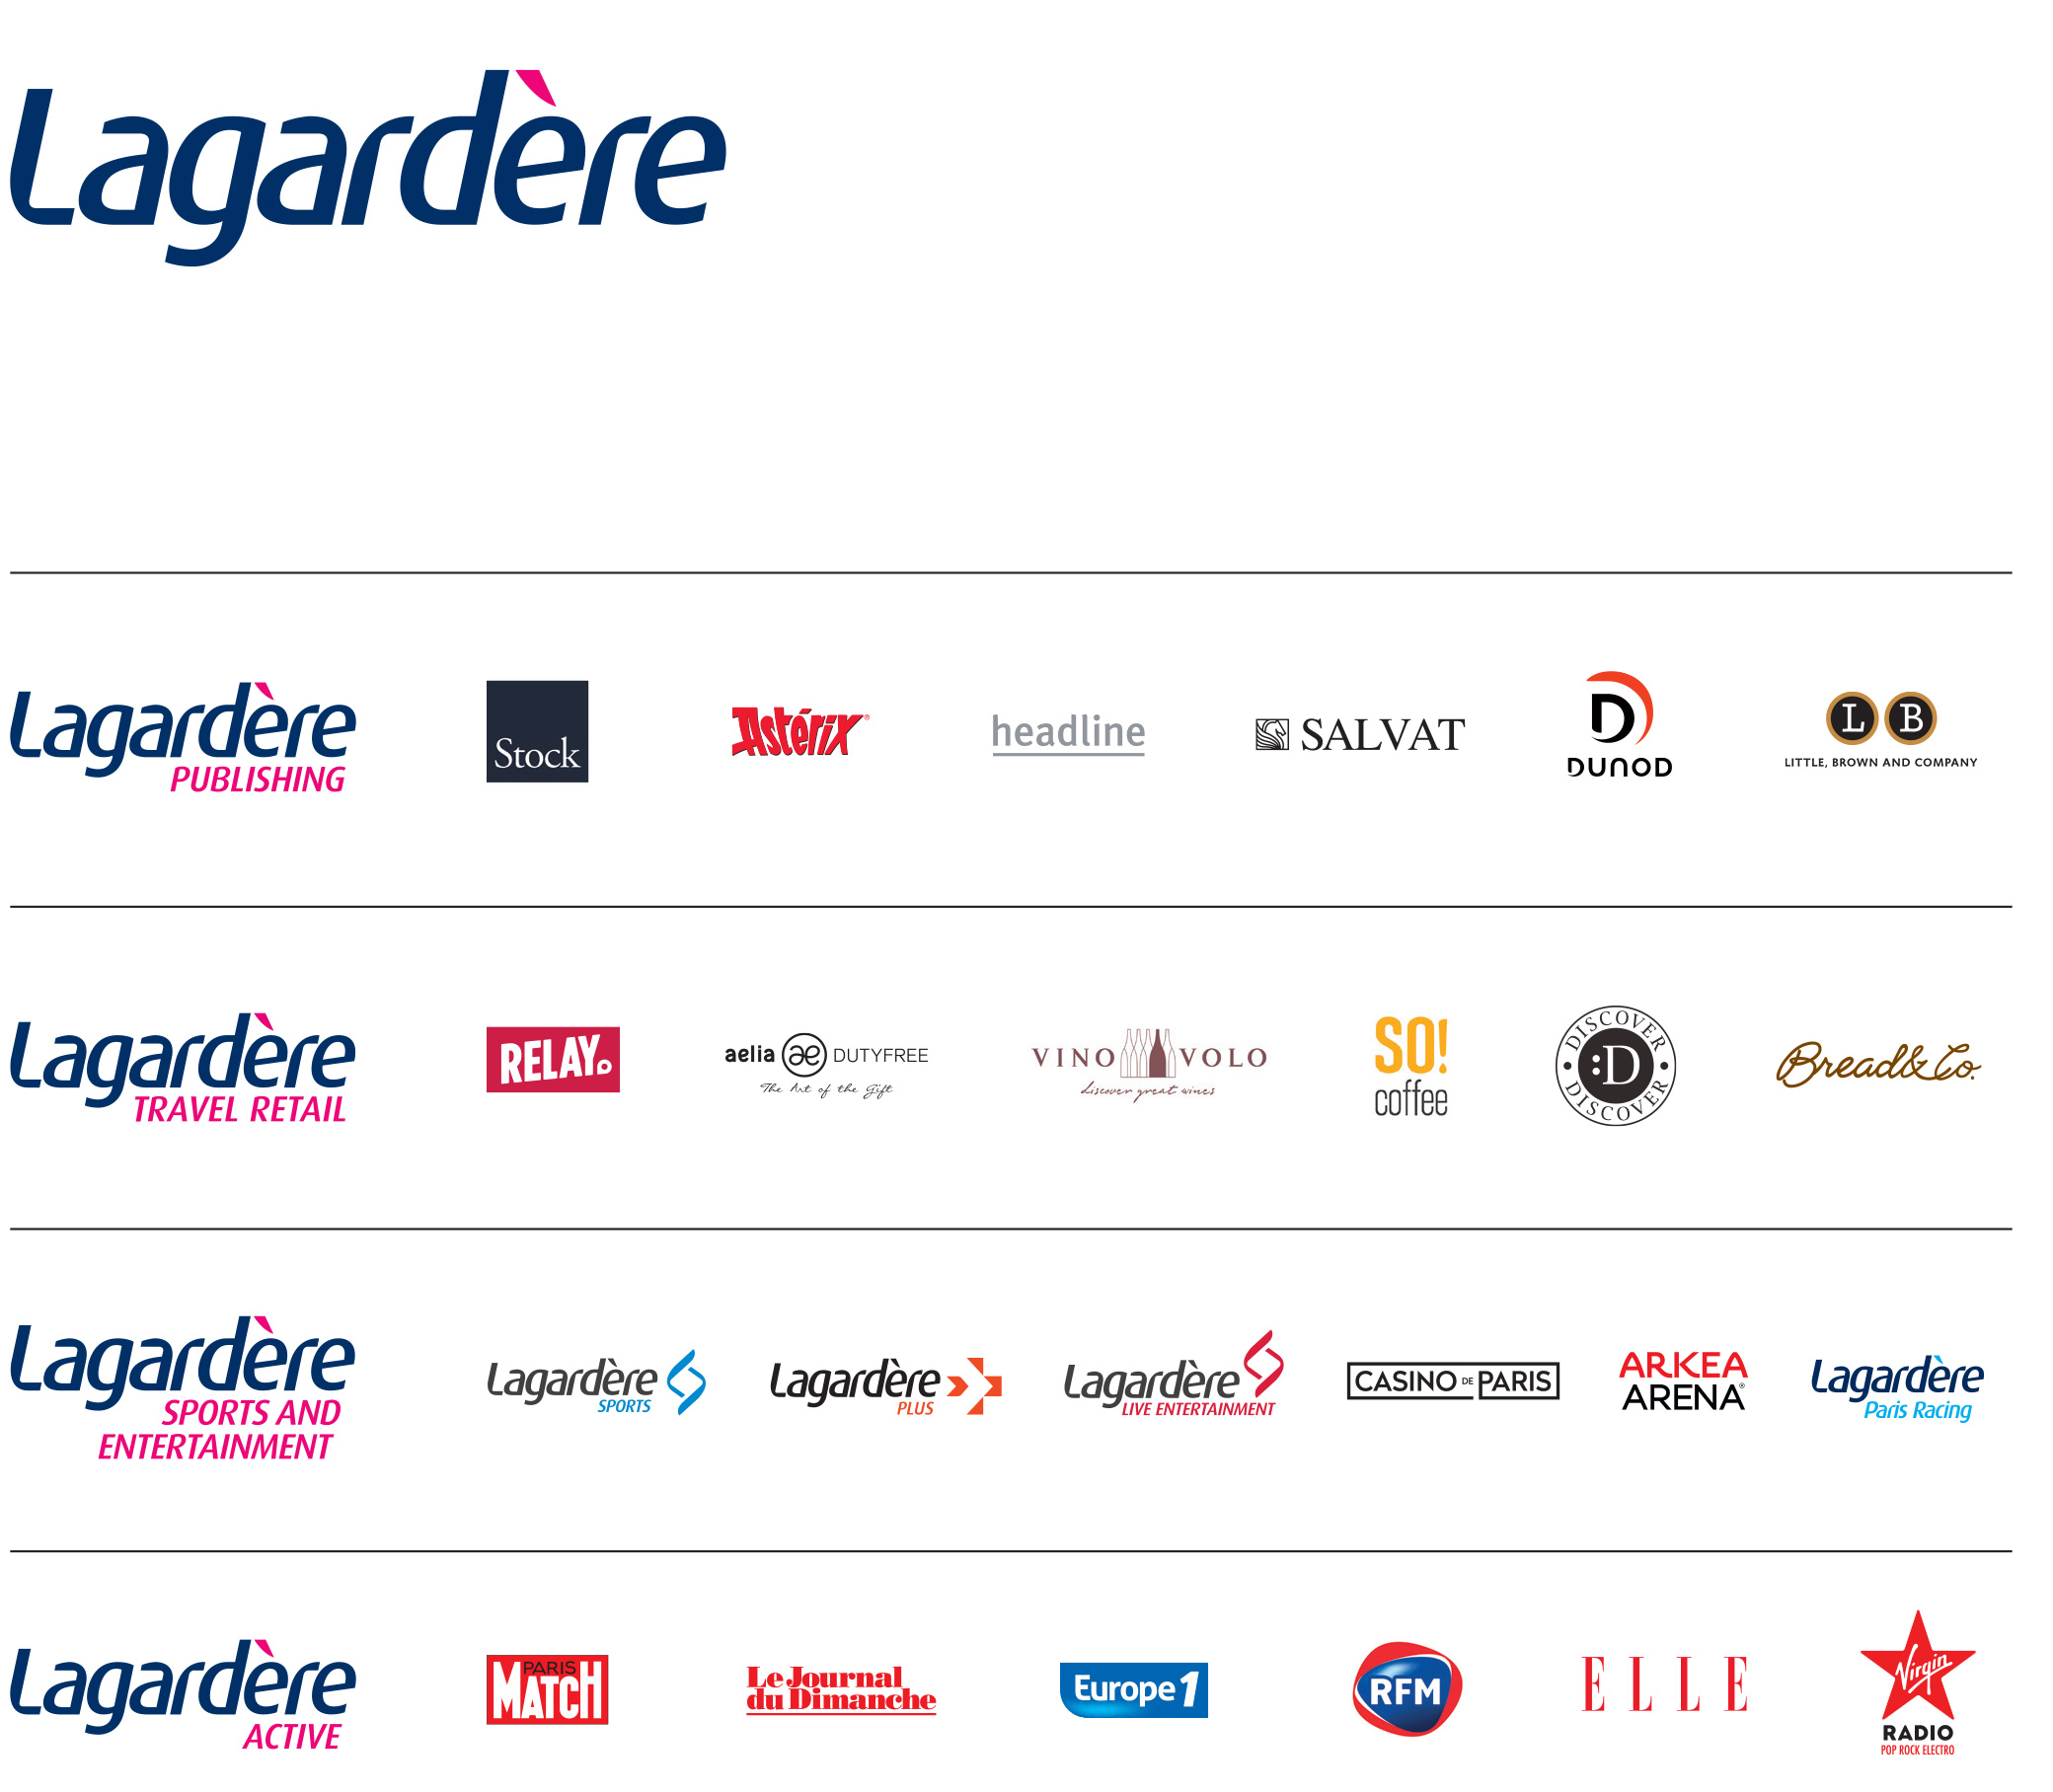 The Lagardère group: Profile